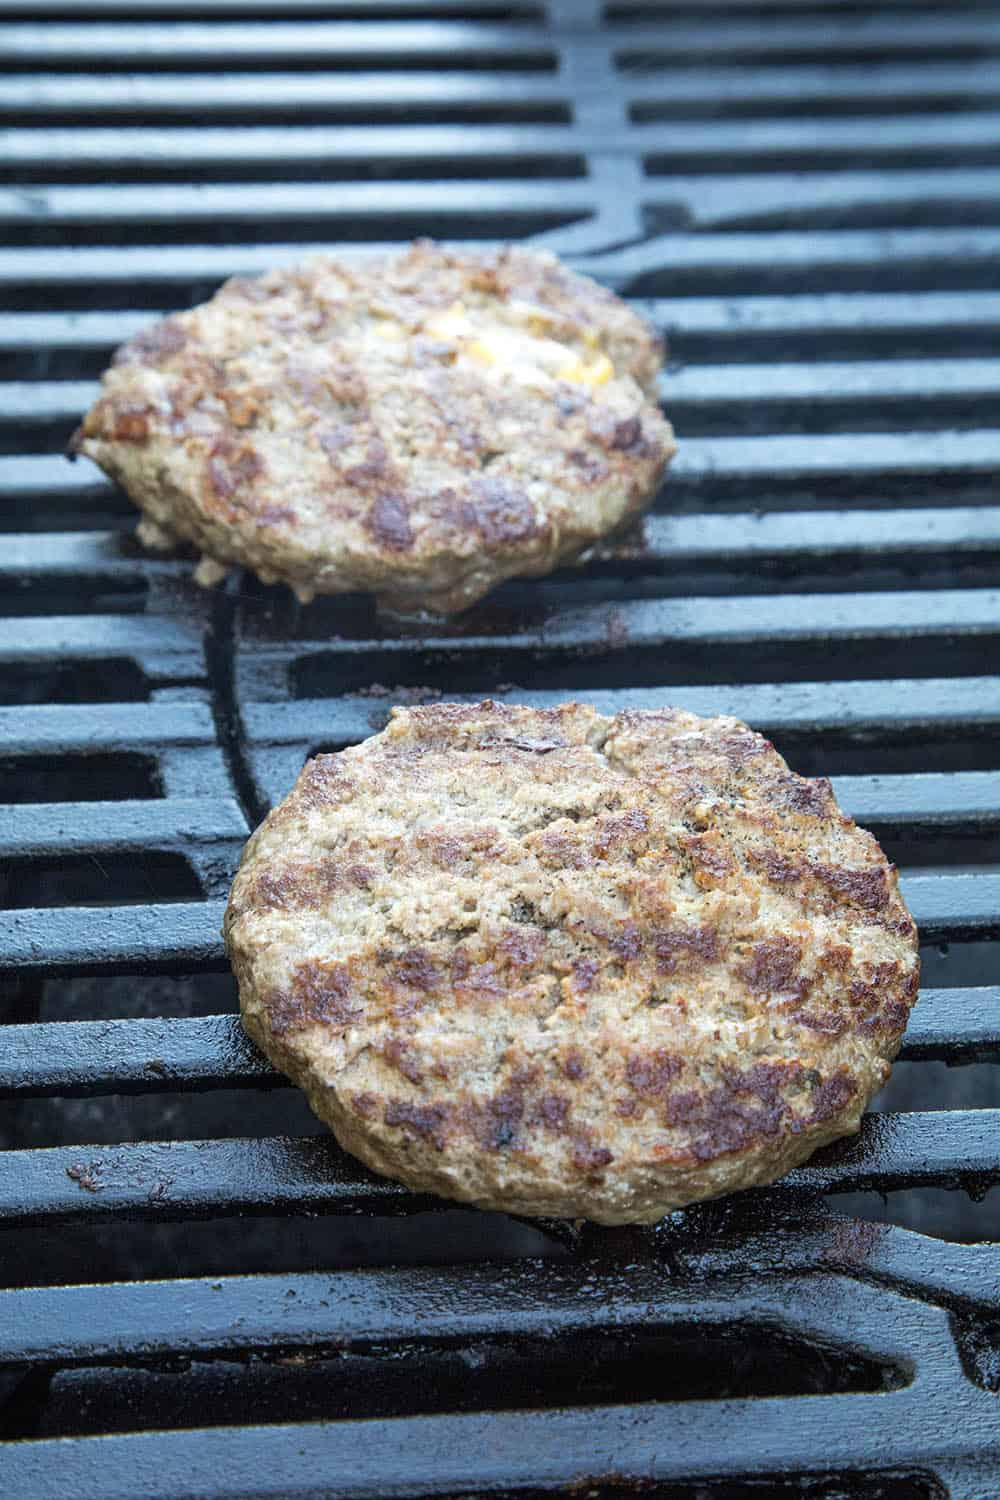 Grilling up the burgers